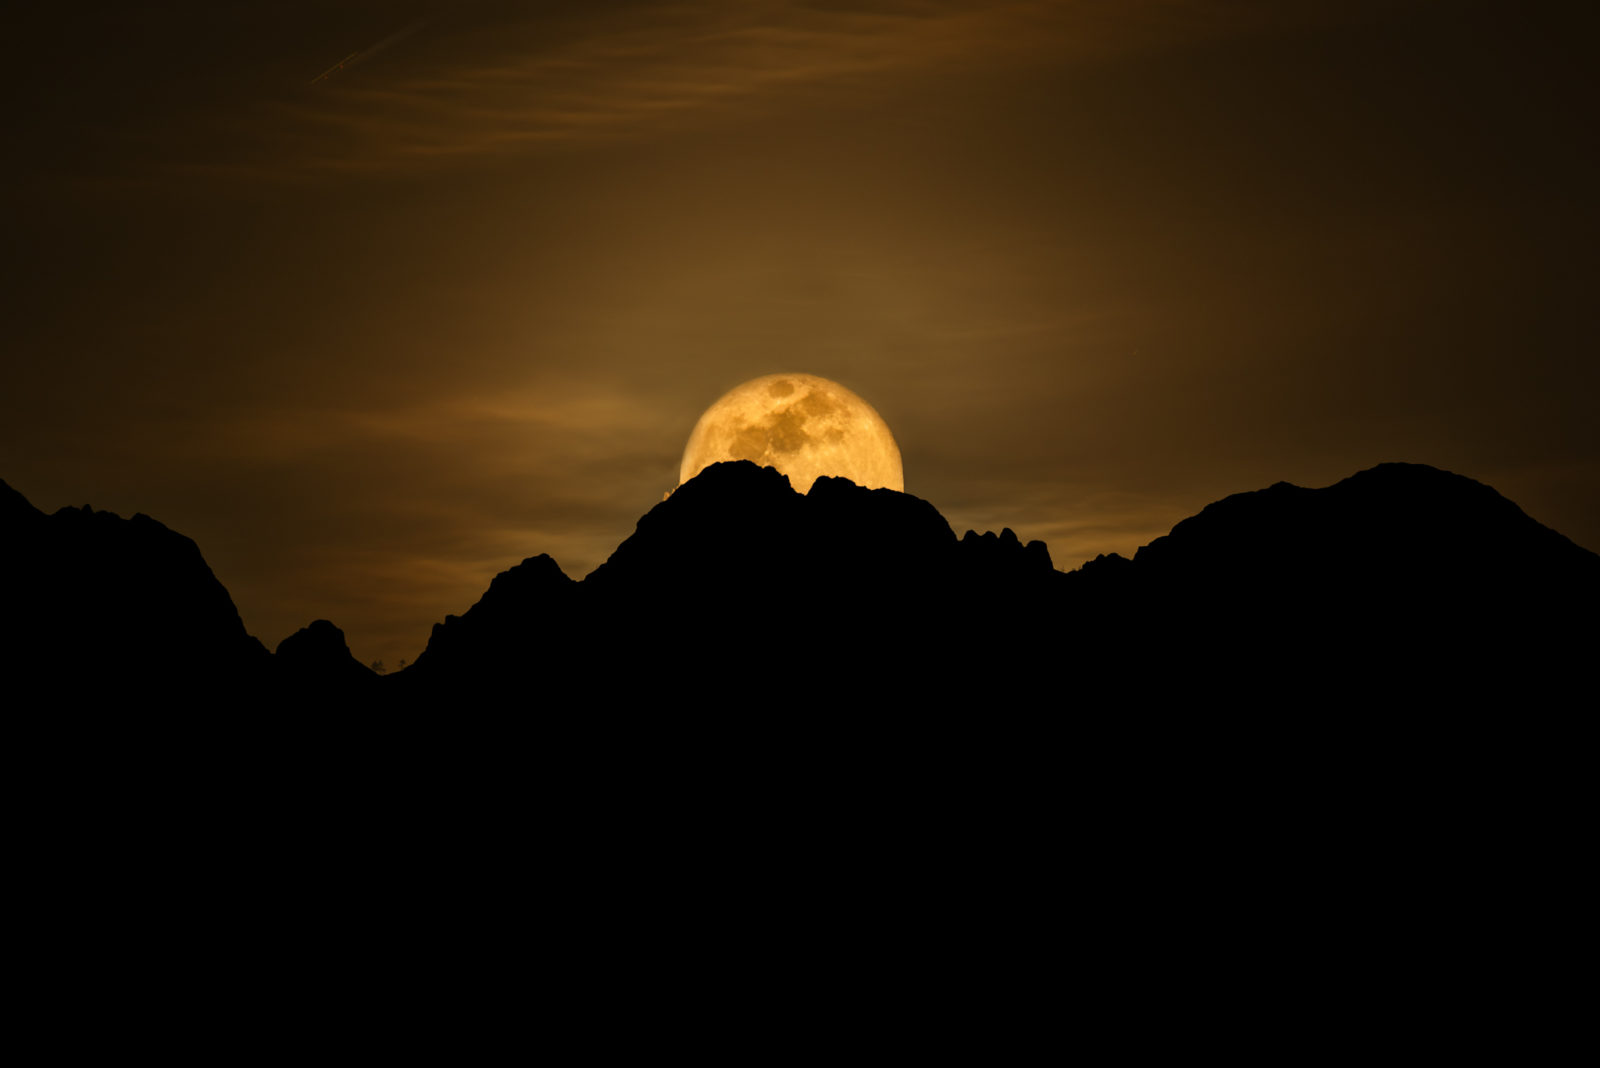 Moonrise over the Four Peaks Wilderness